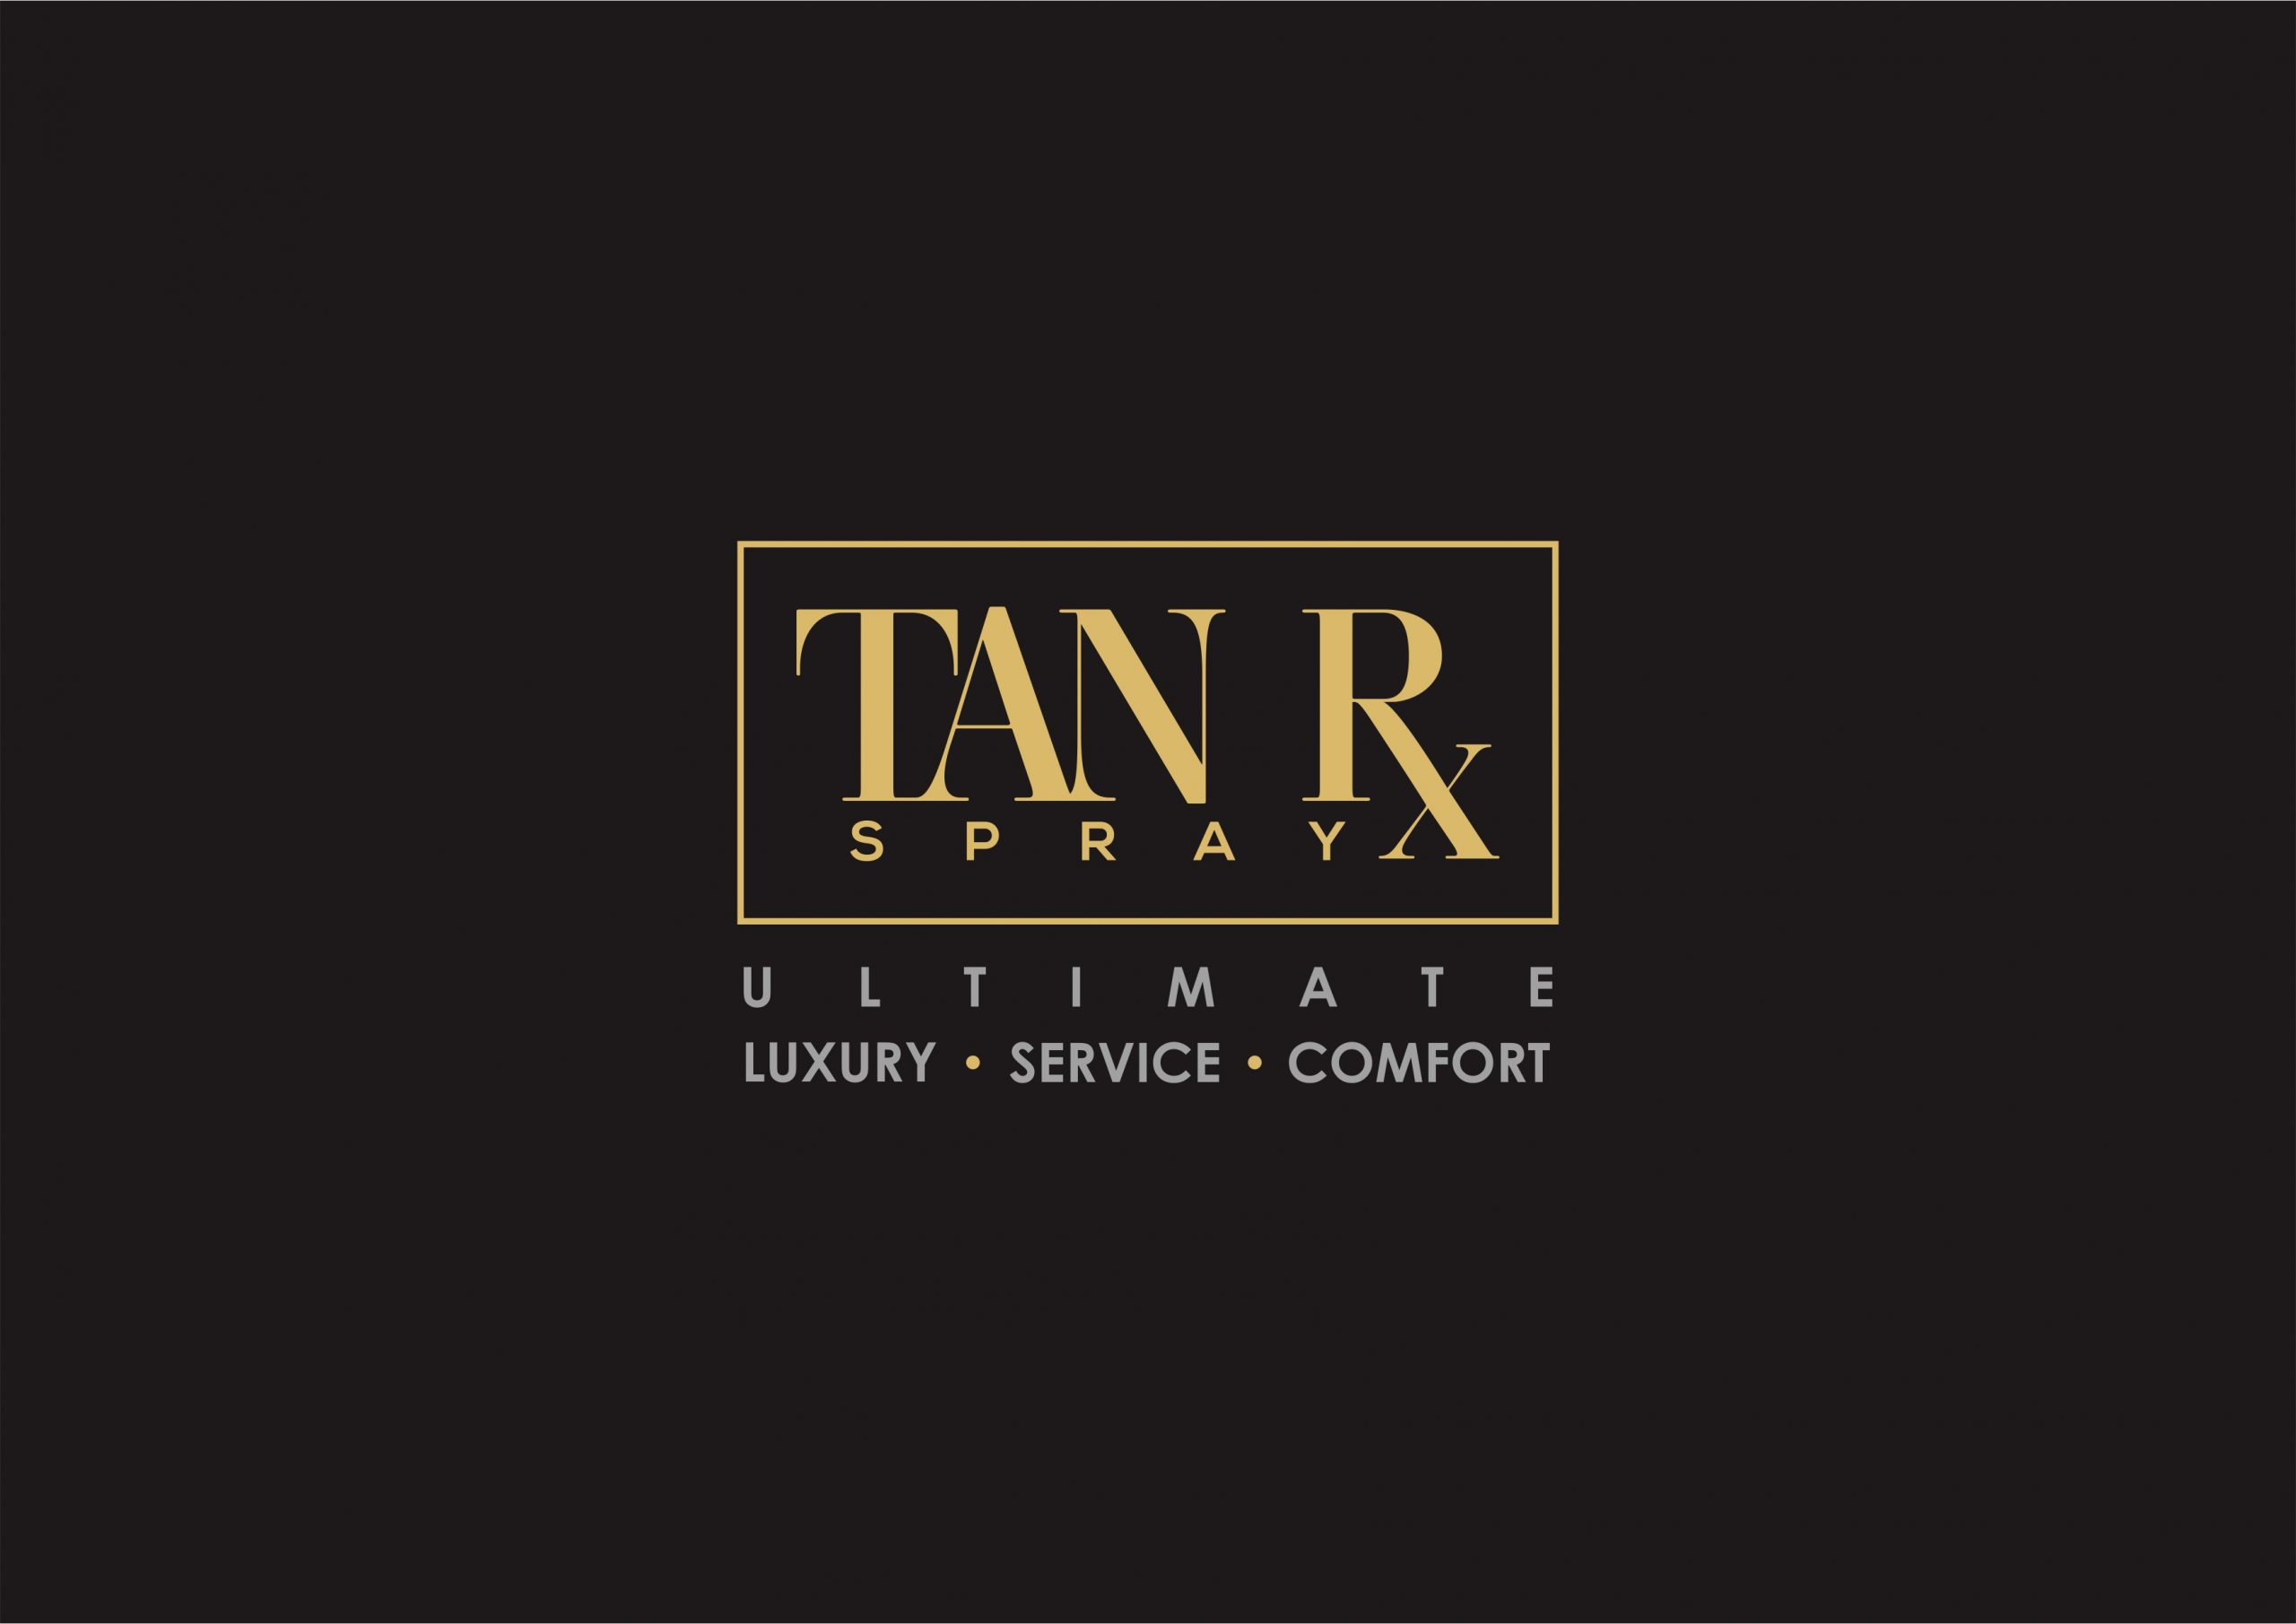 tan rx treatments